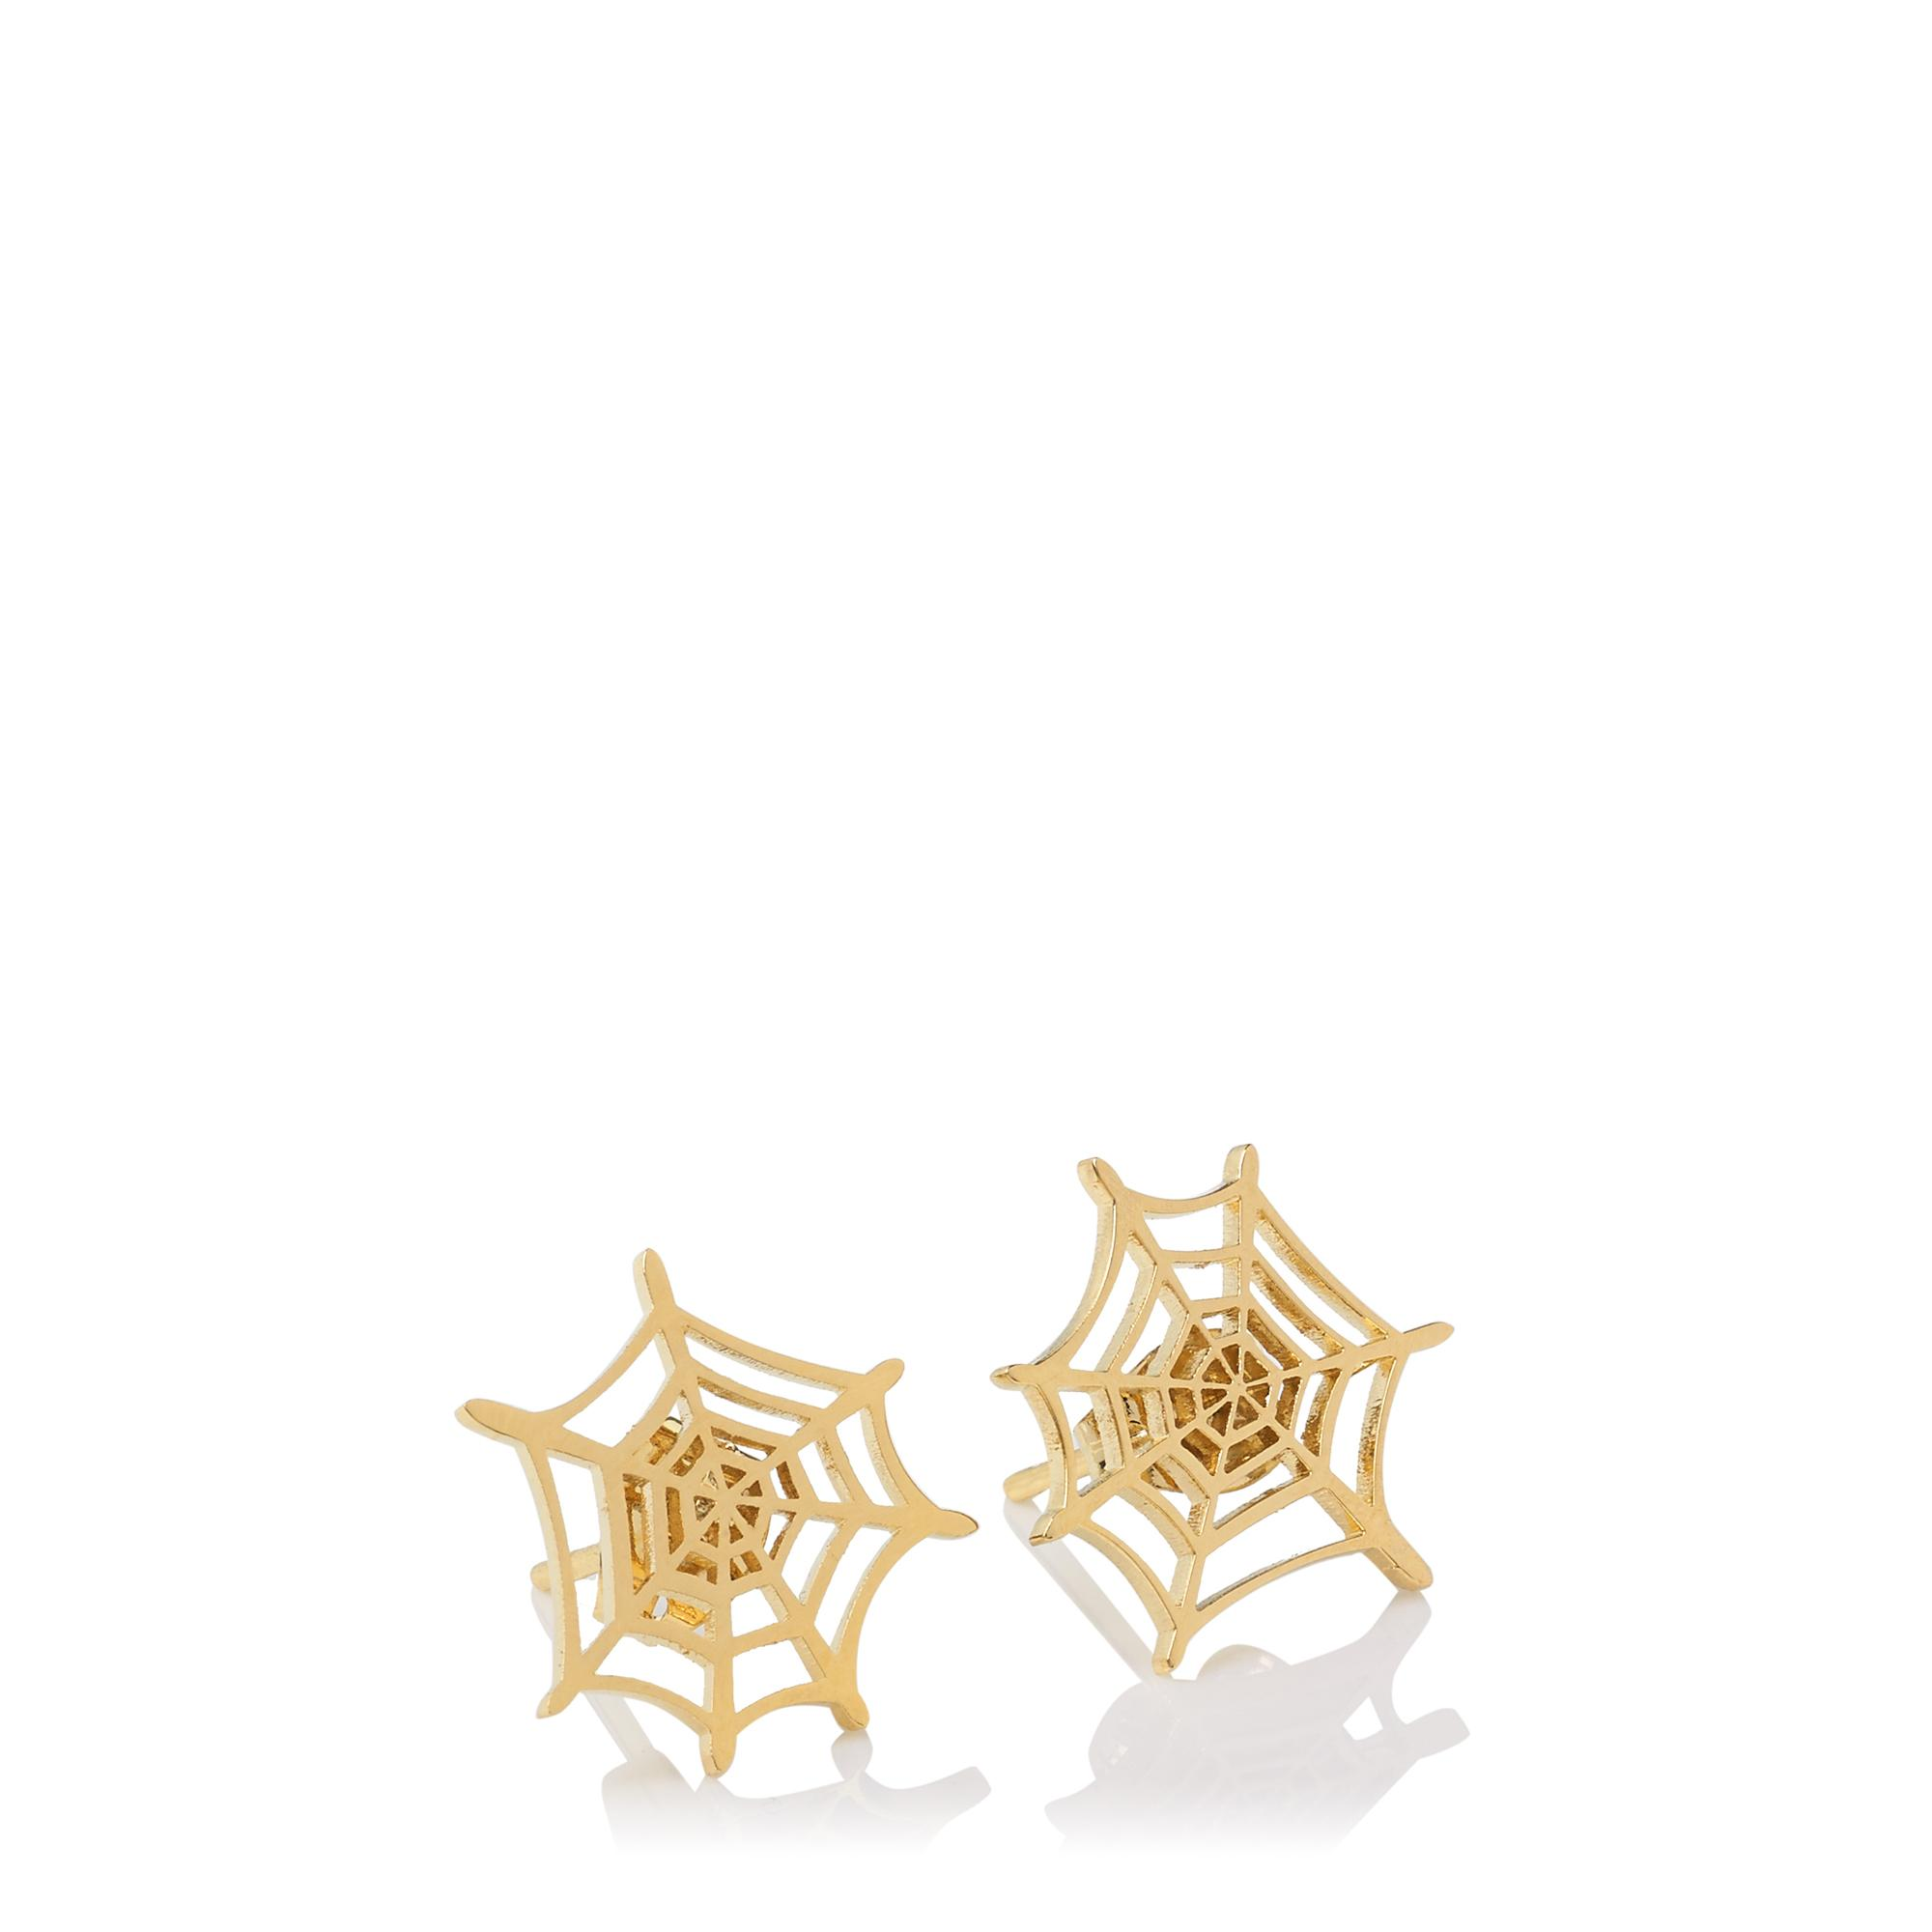 Charlotte Olympia Spider Web Earrings in Gold